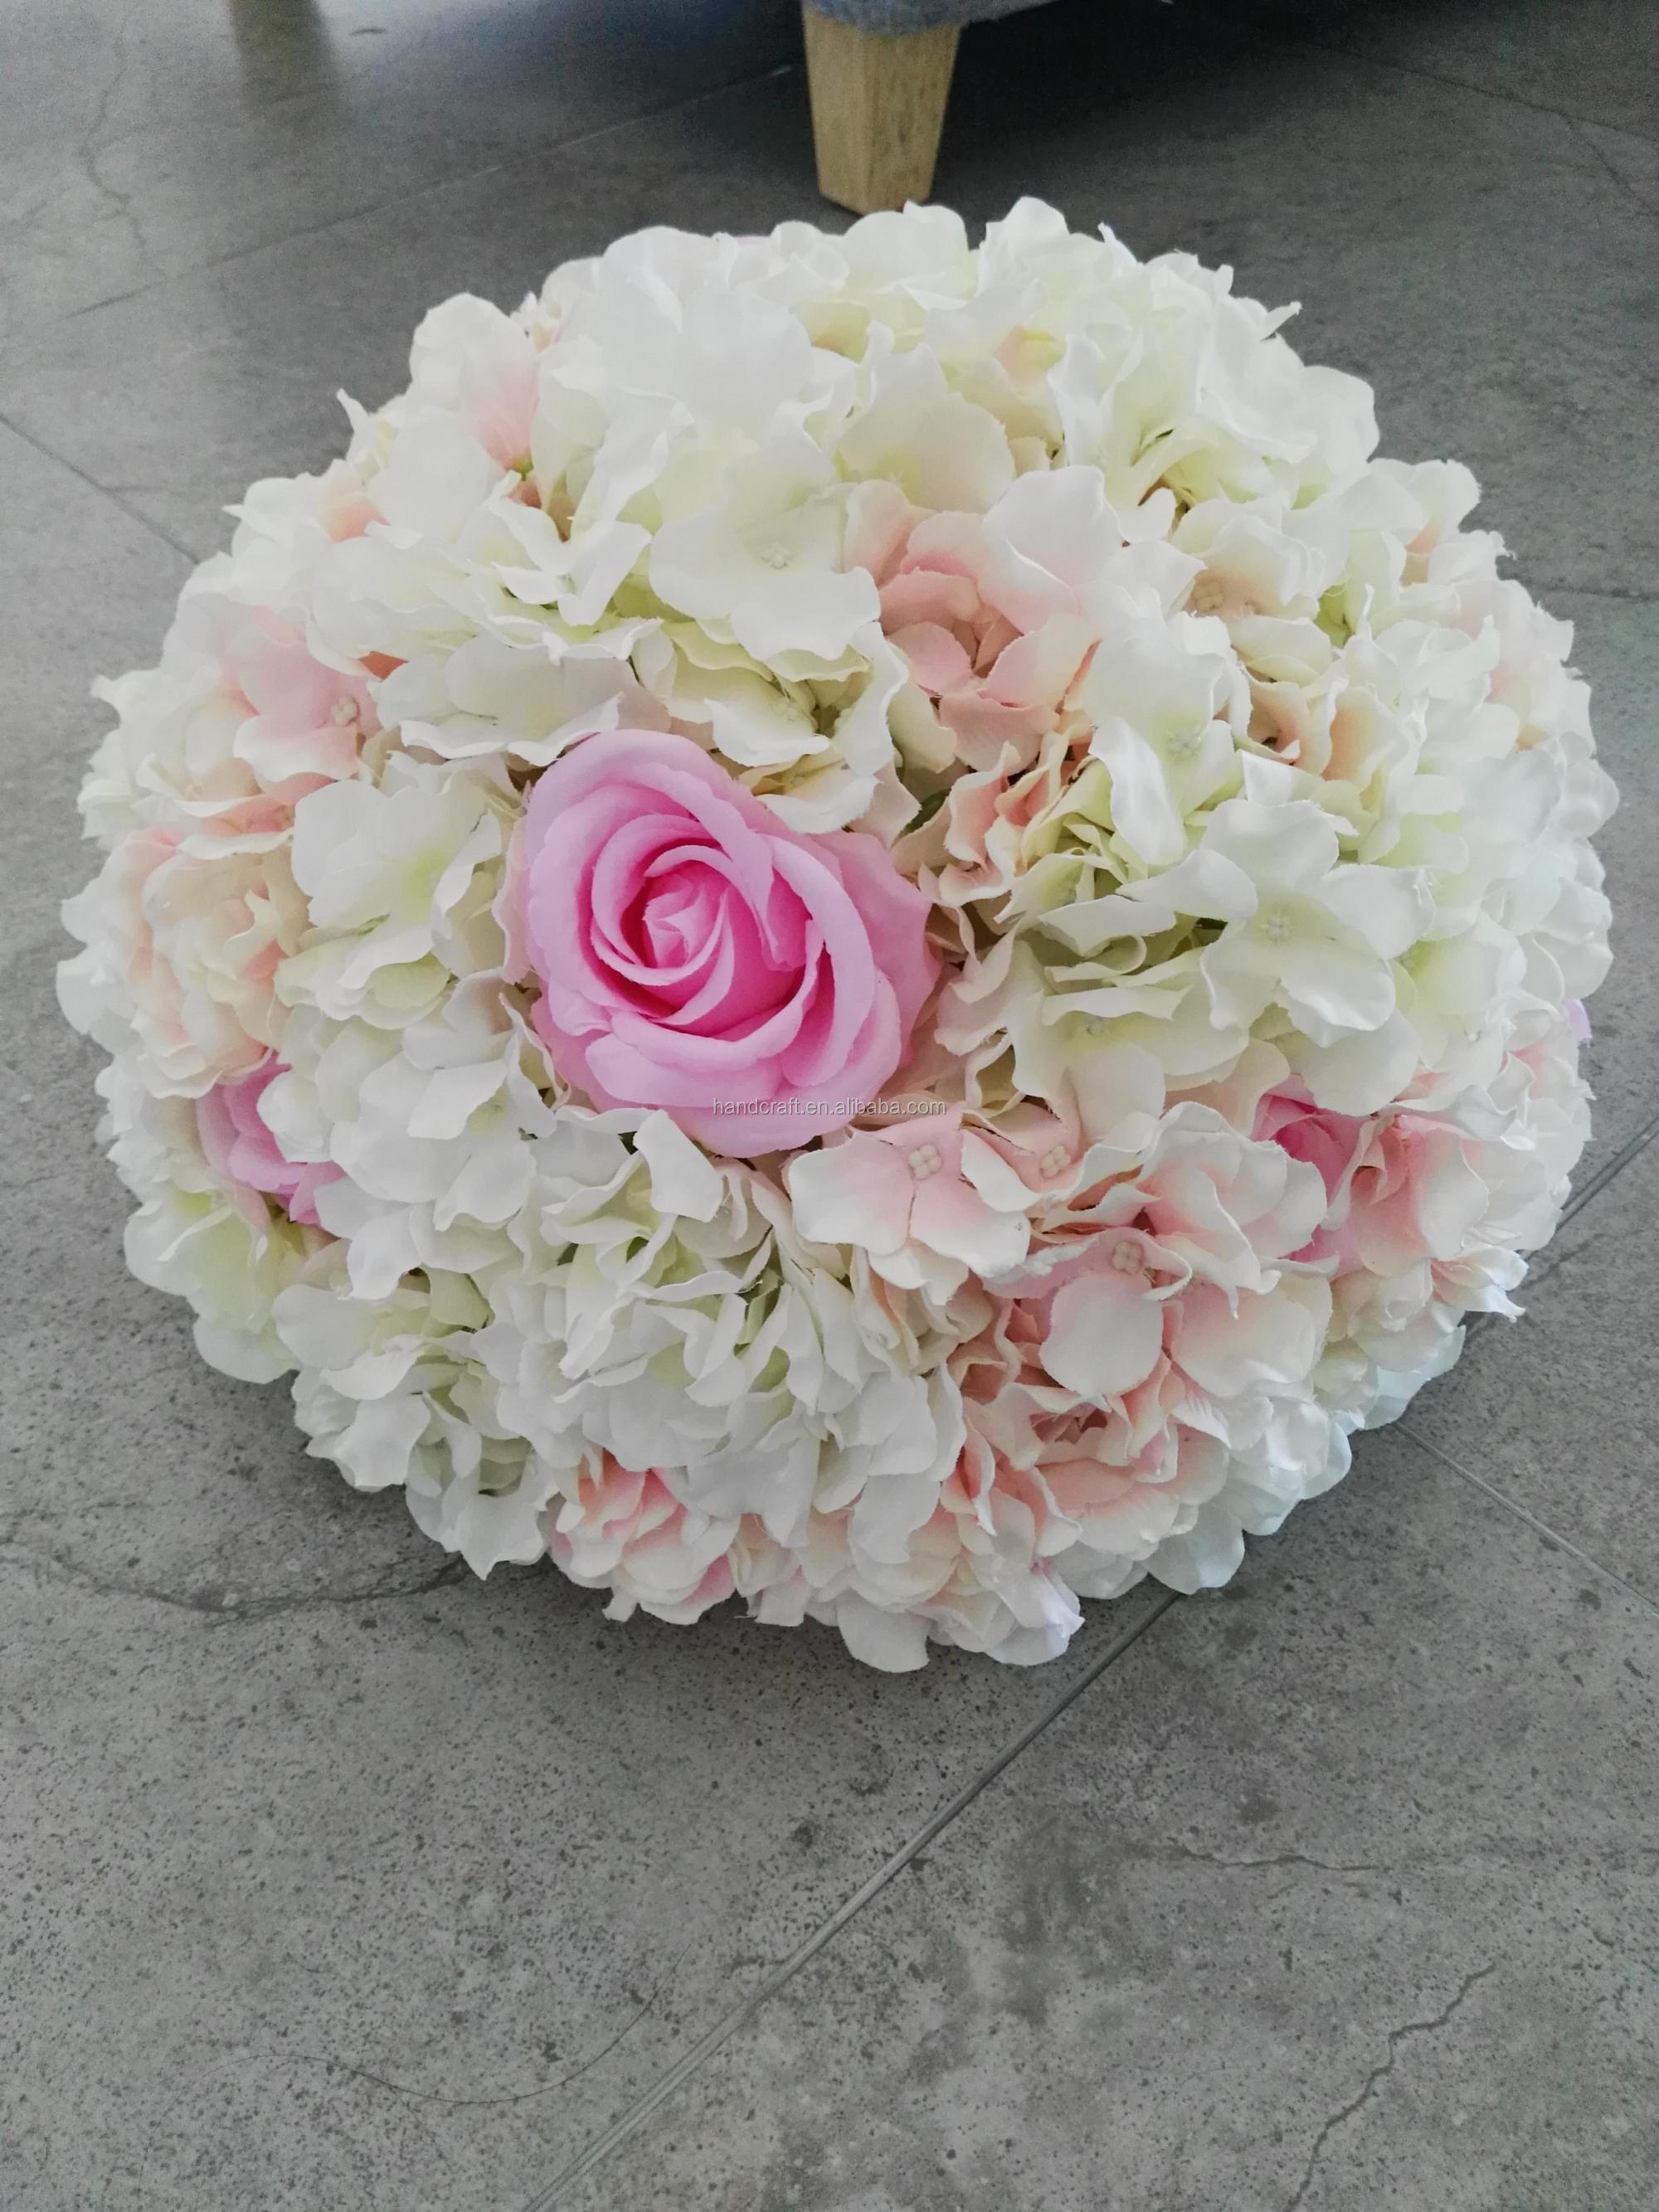 Centerpiece Flower Arrangement With White And Pink Hydrangea And Rose Buy Hanging Flower Arrangements Lighted Flower Arrangements Metal Flower Arrangements Product On Alibaba Com